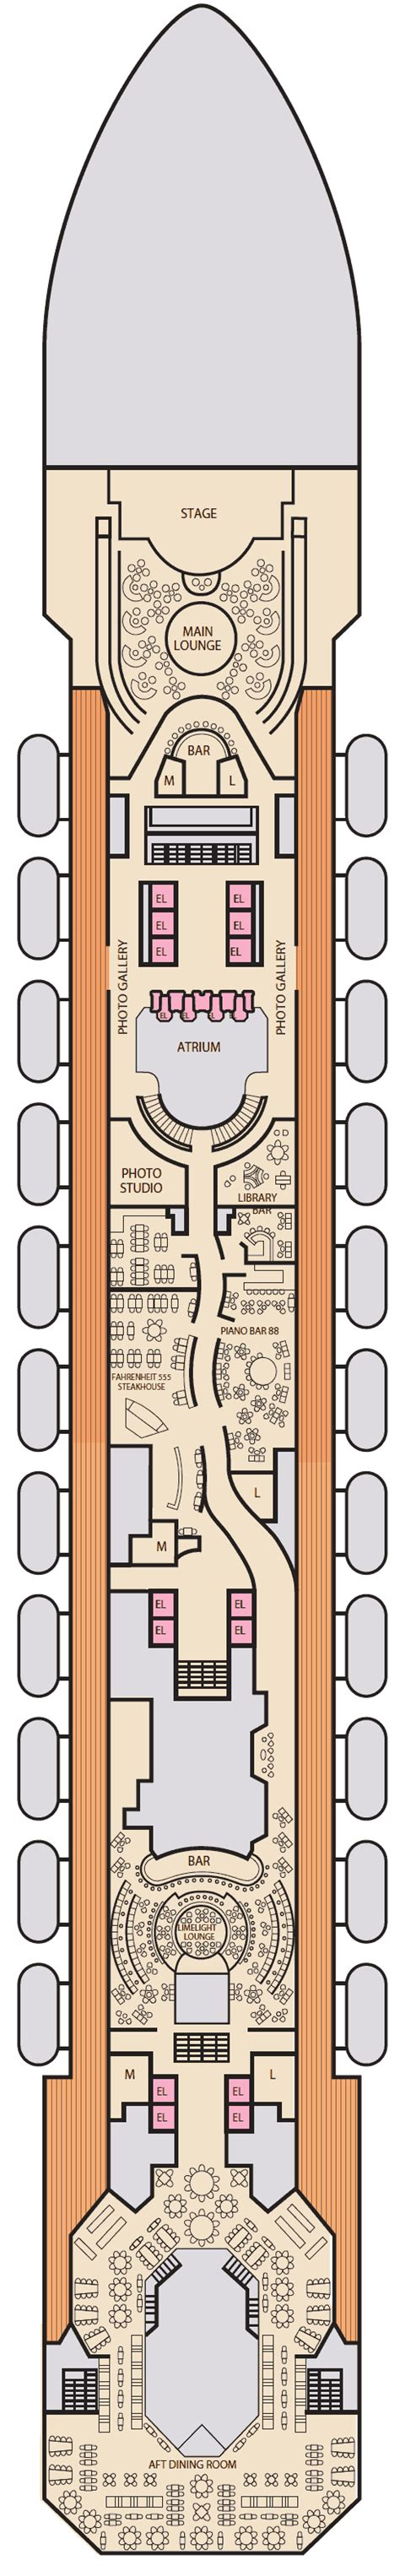 carnival sunshine floor plan 100 carnival floor plan 1340101858 jpg your